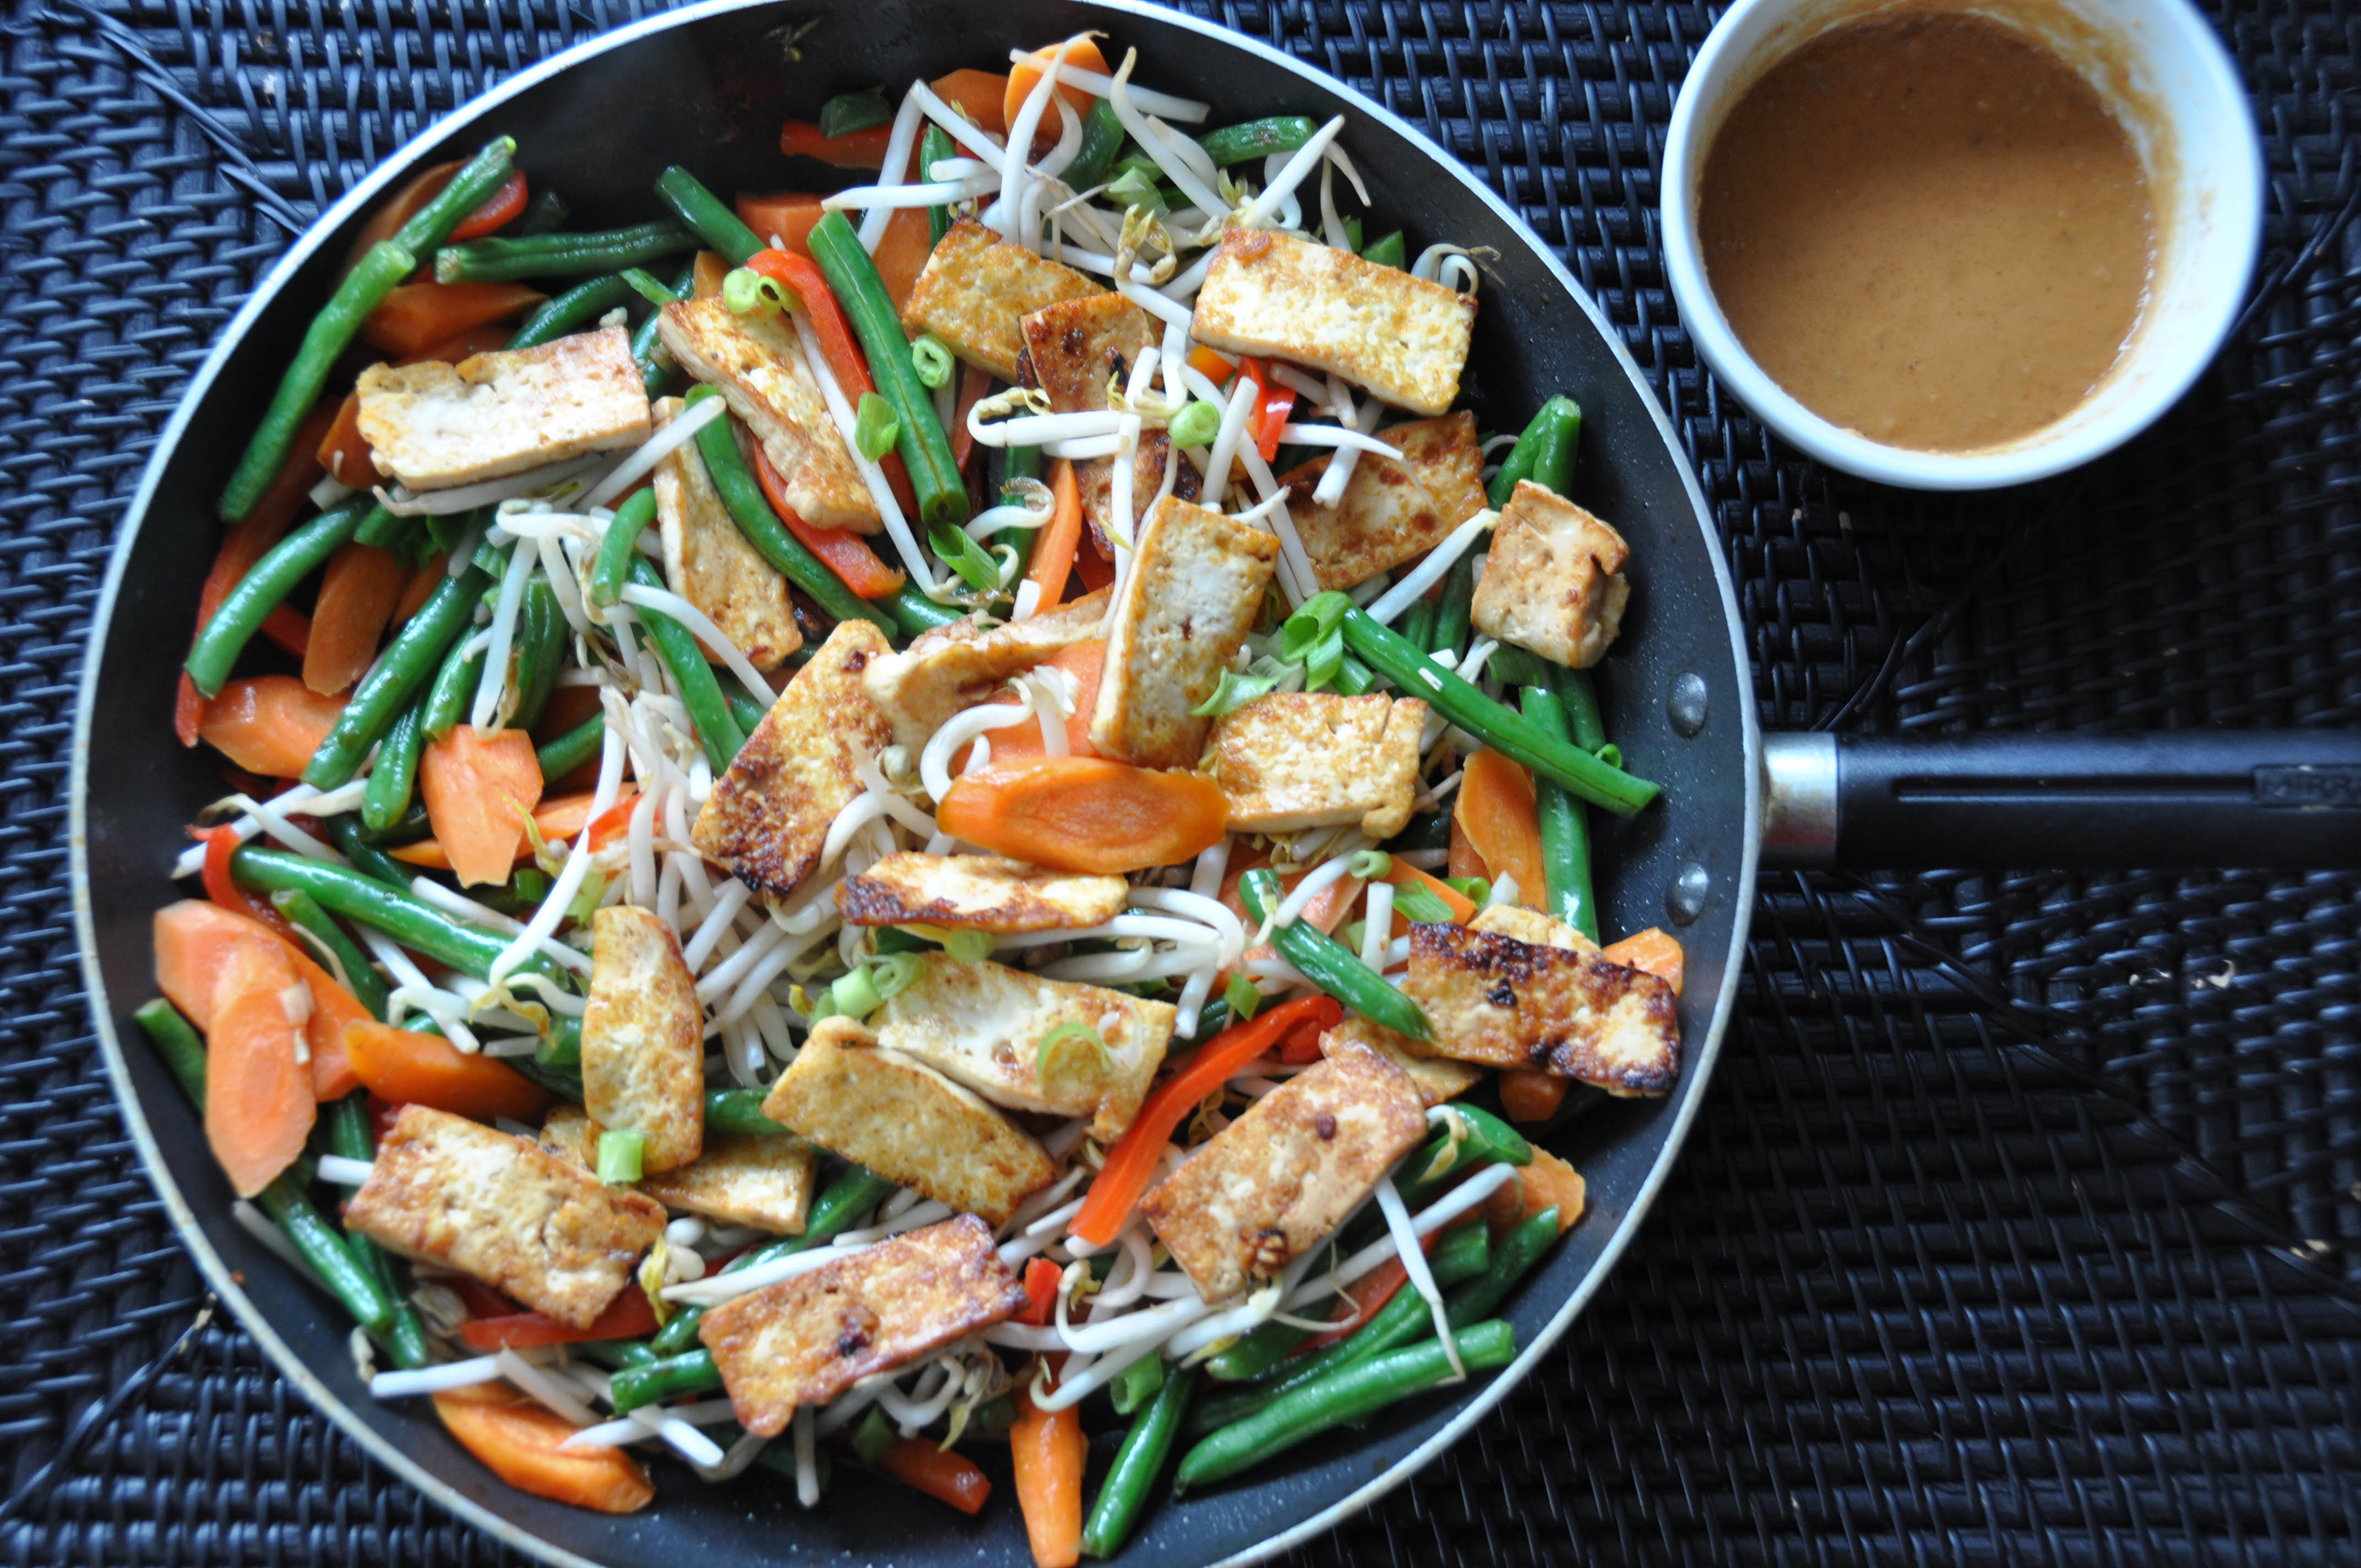 Tofu green bean stir fry with peanut sauce nutritious eats tofu and vegetable stir fry forumfinder Image collections